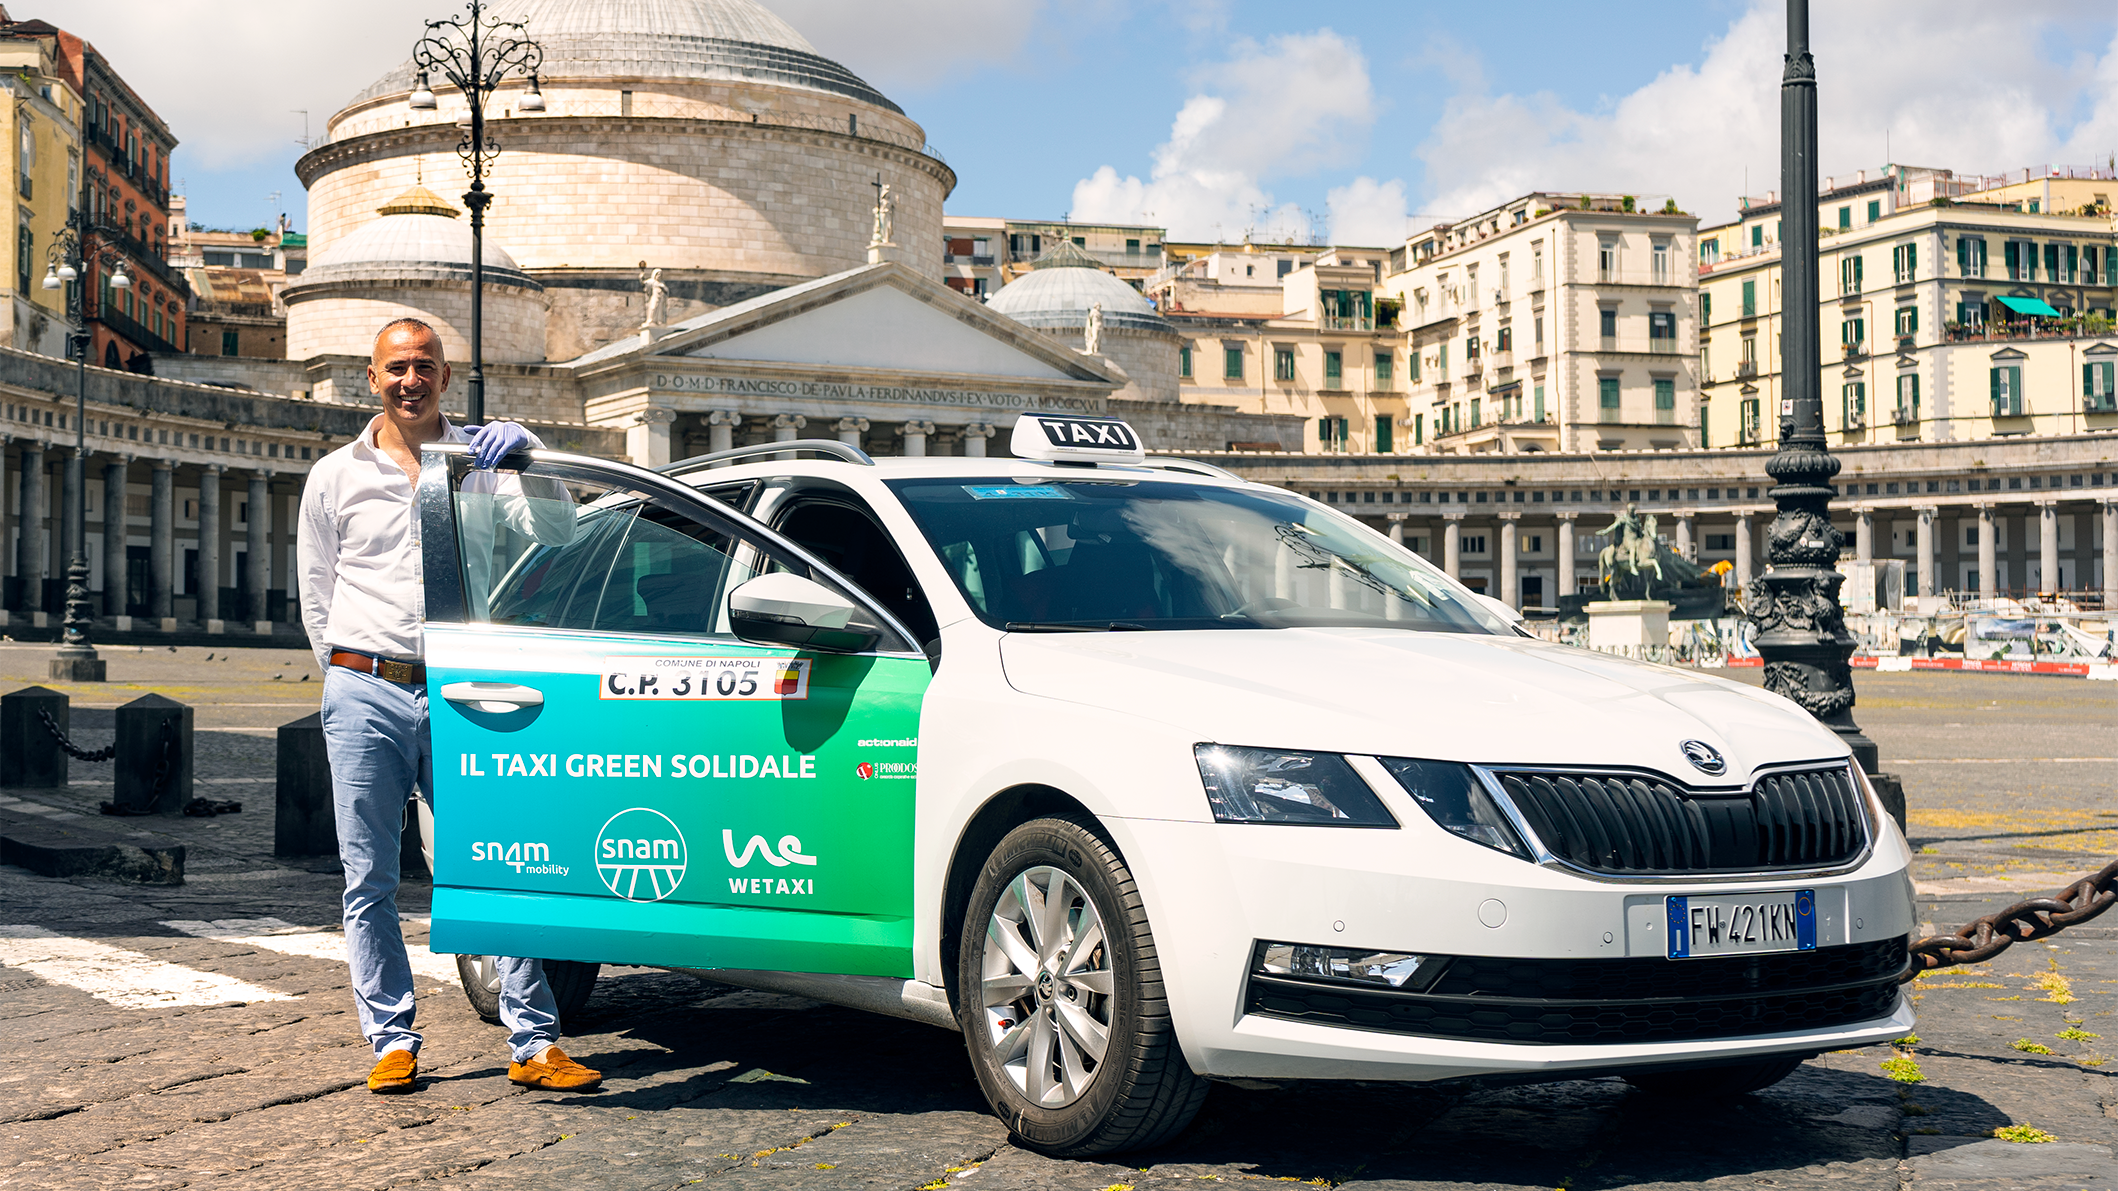 I Taxi Green Solidali per ripartire in modo sostenibile